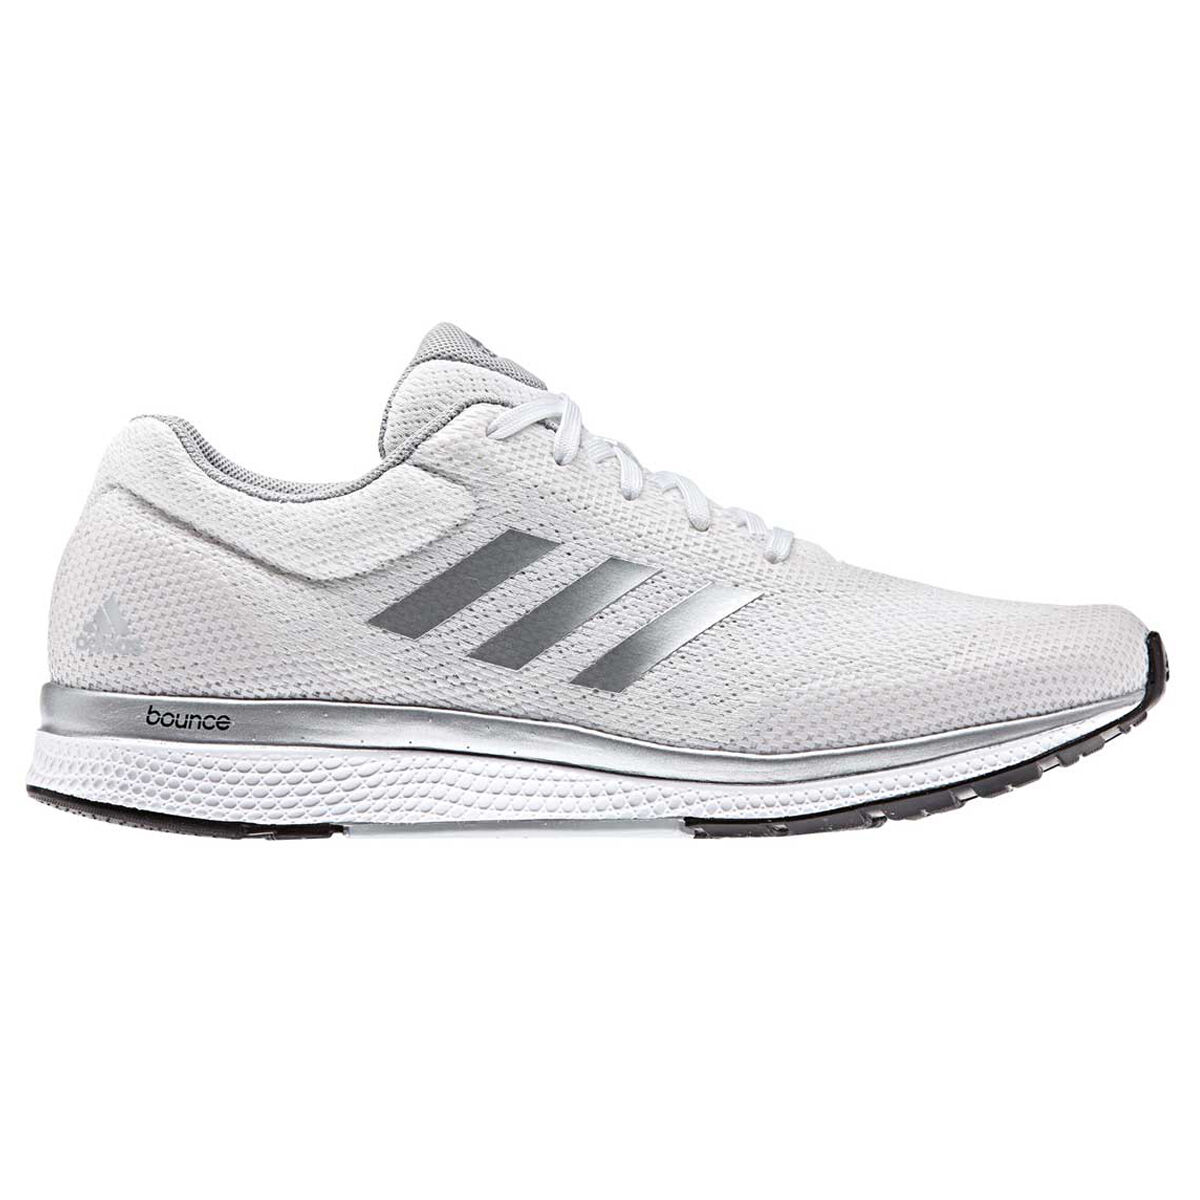 adidas Mana Bounce 2 Womens Running Shoes